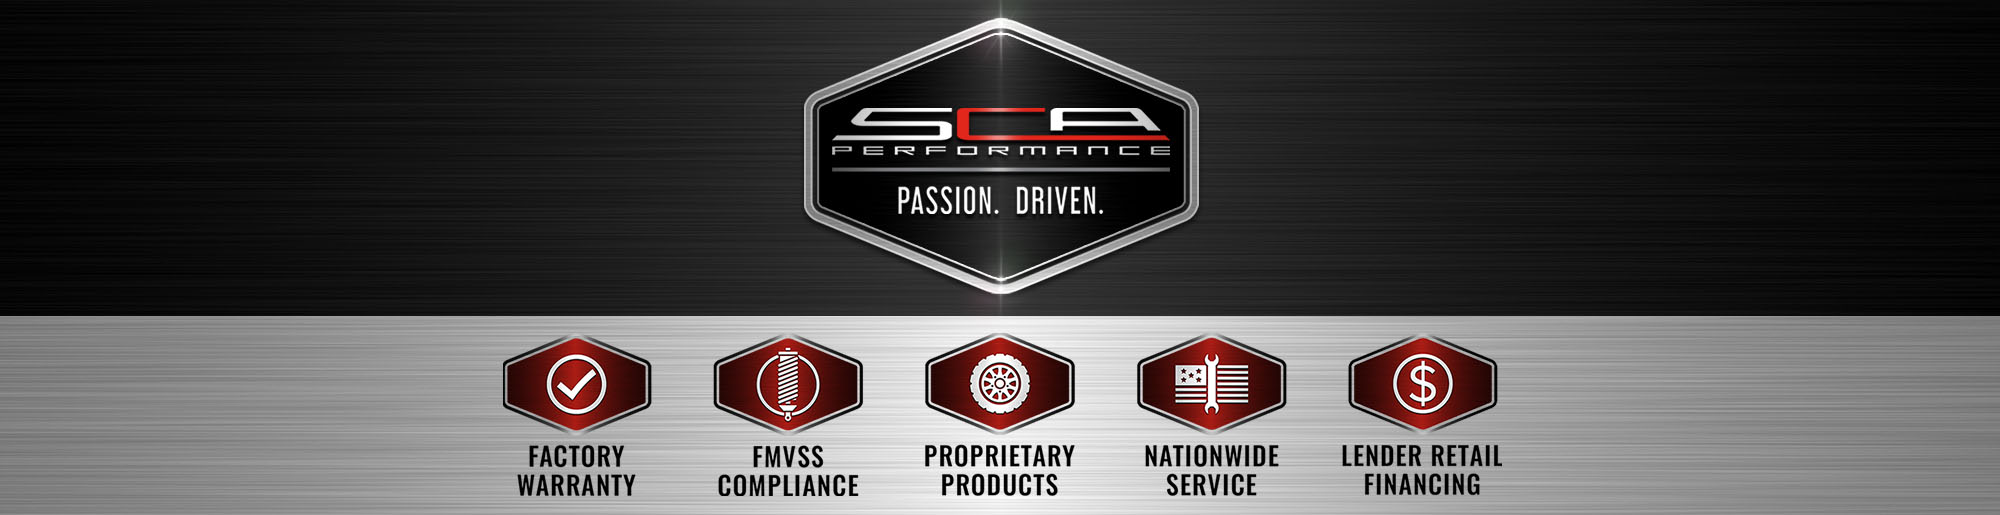 SCA Performance. Passion. Driven. Factory Warranty - FMVSS Compliance - Proprietary Products - Nationwide Service - Lender Retail Financing